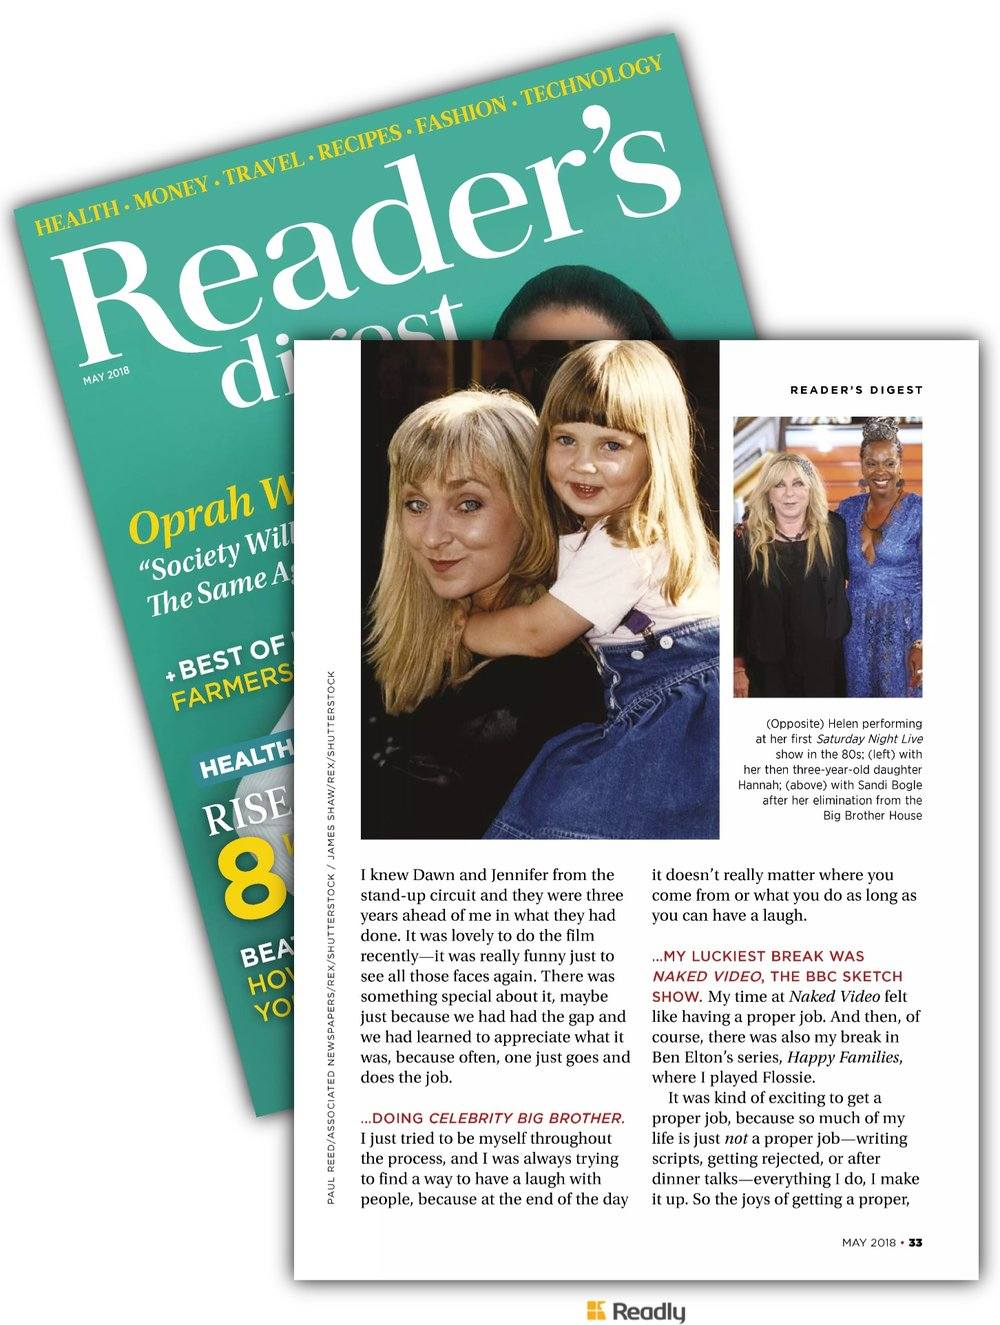 Helen Lederer / Readers Digest